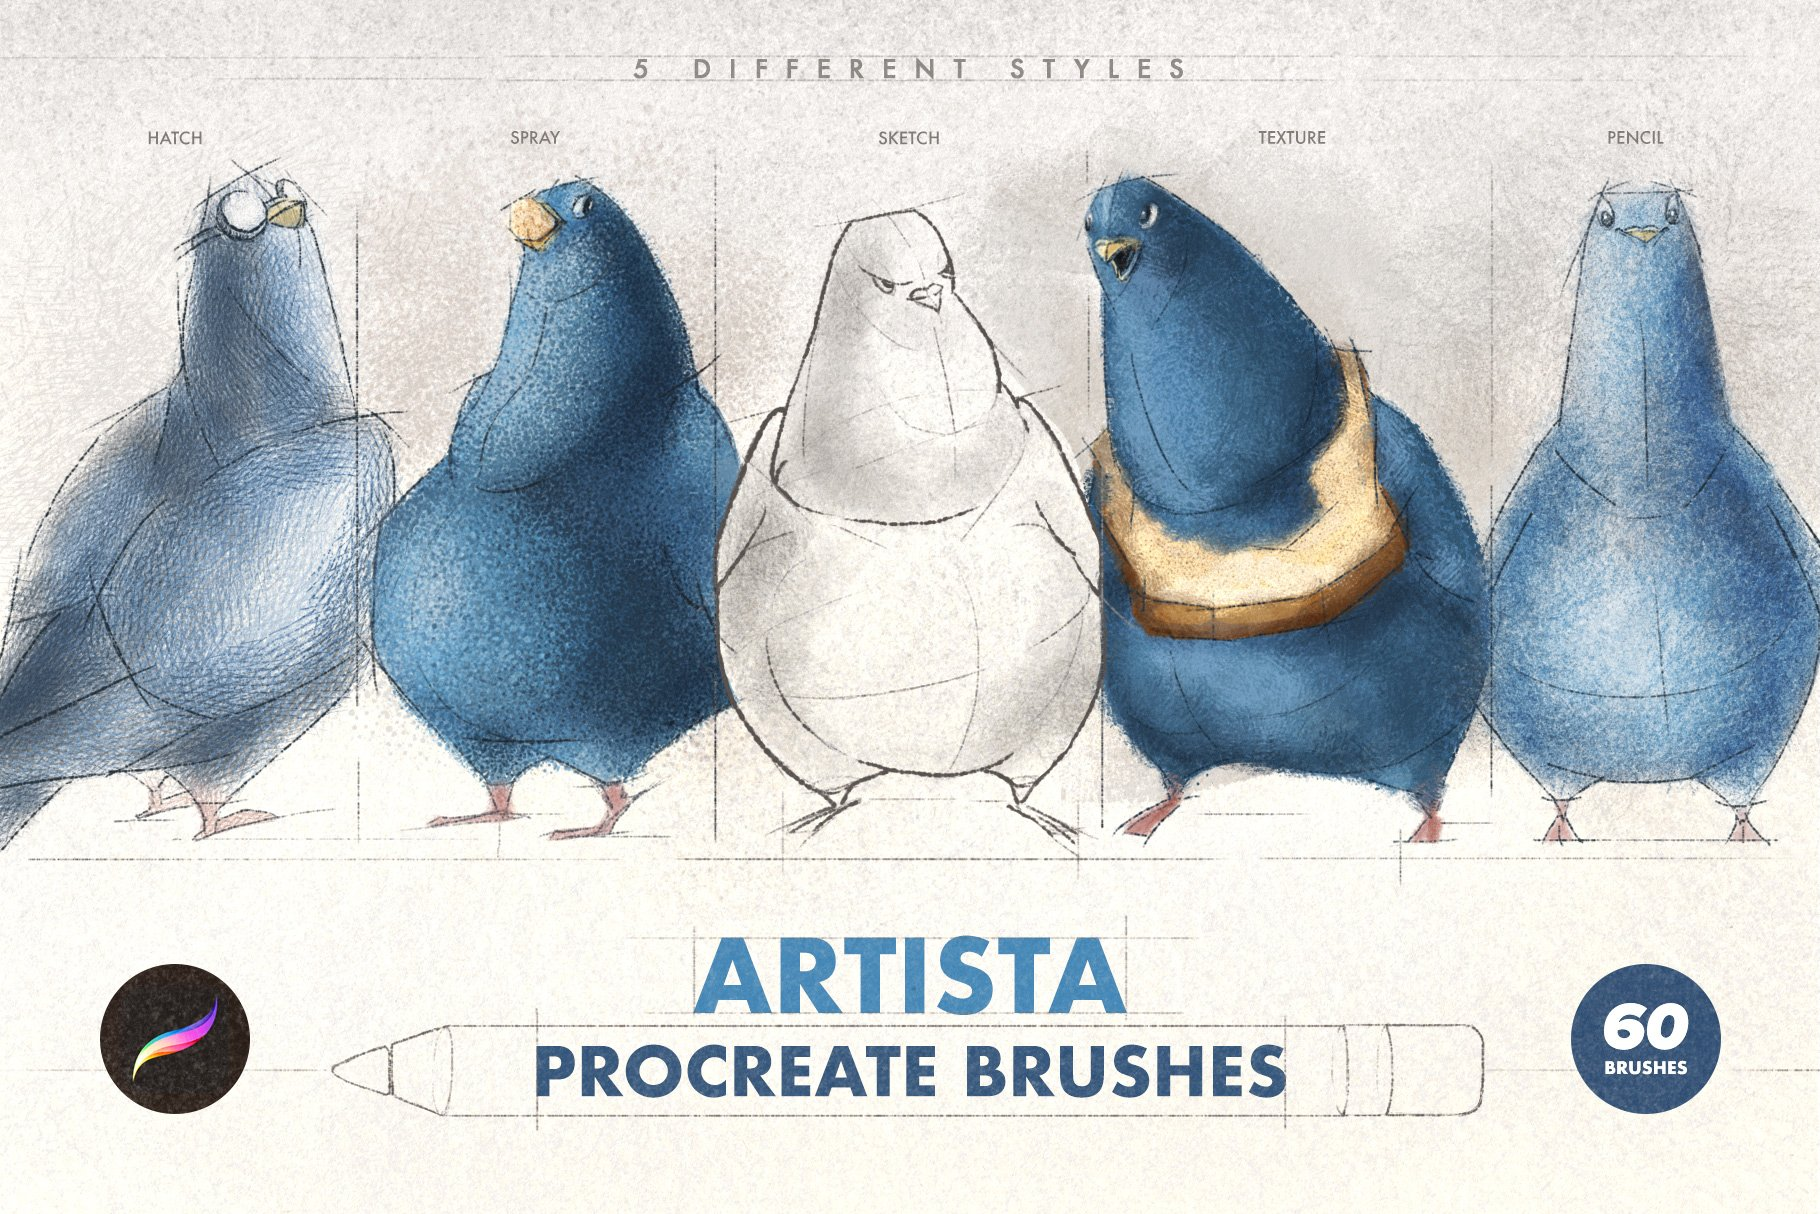 Artista Procreate Brushes